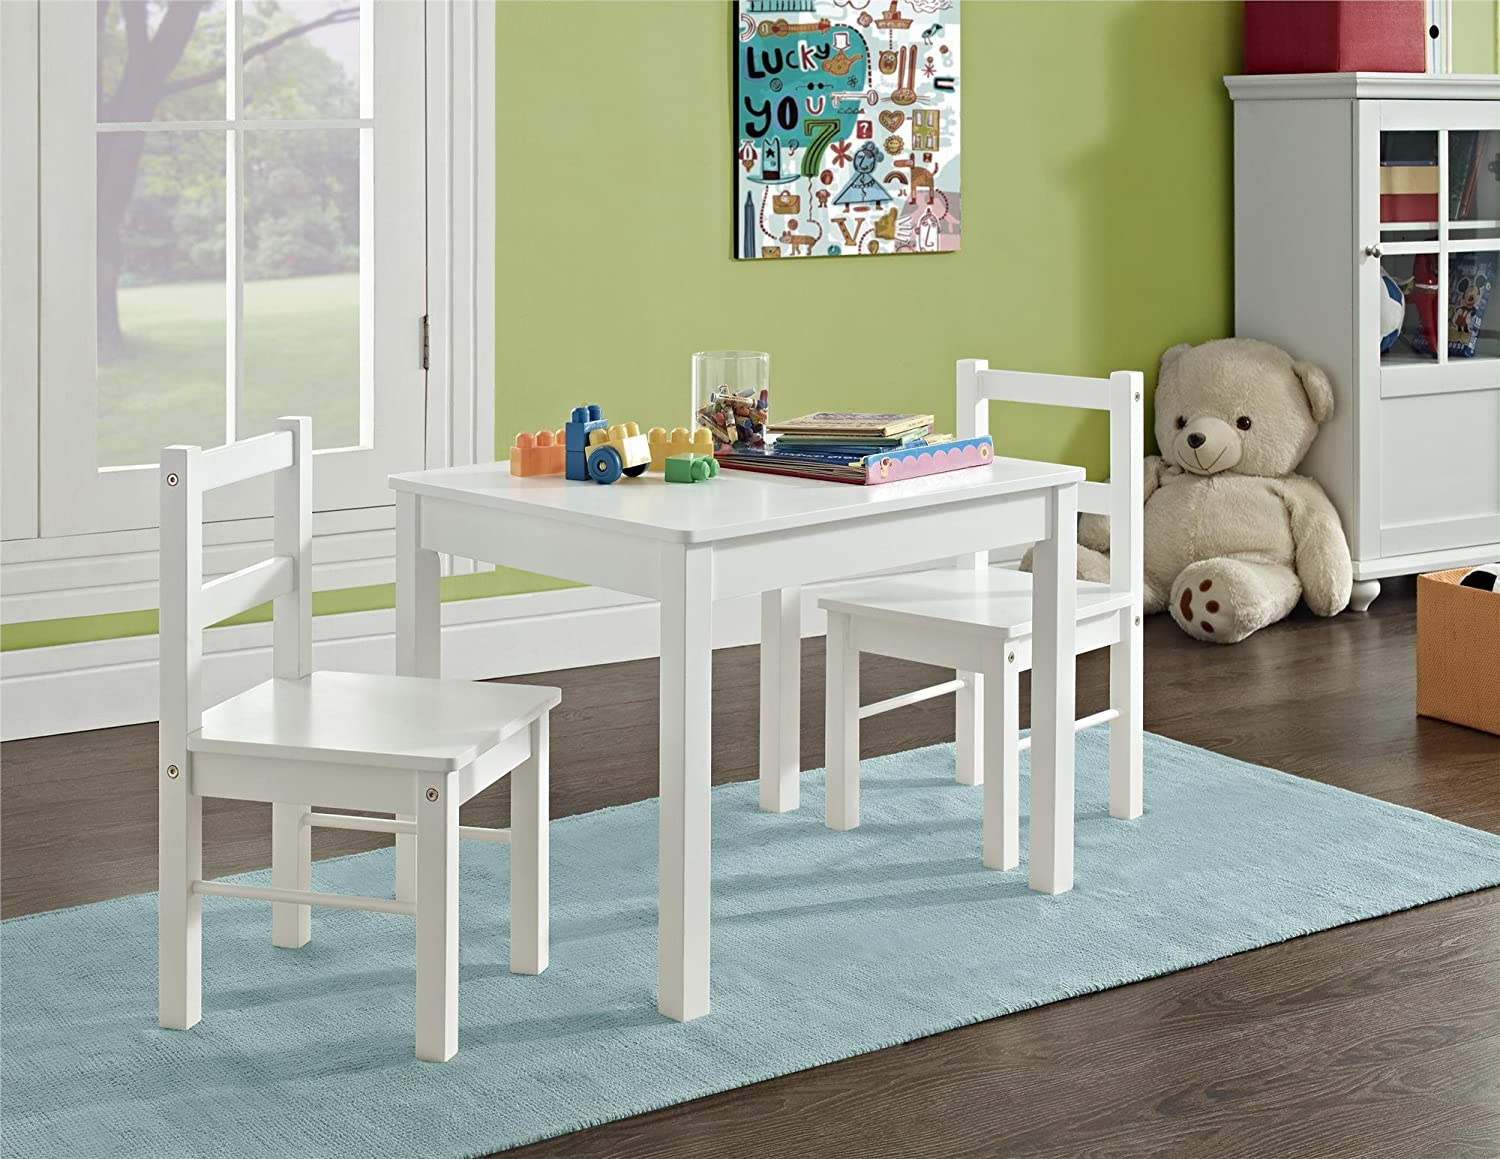 Amazon.com: Cosco Hazel Kids Table And Chairs Set White: Kitchen U0026 Dining